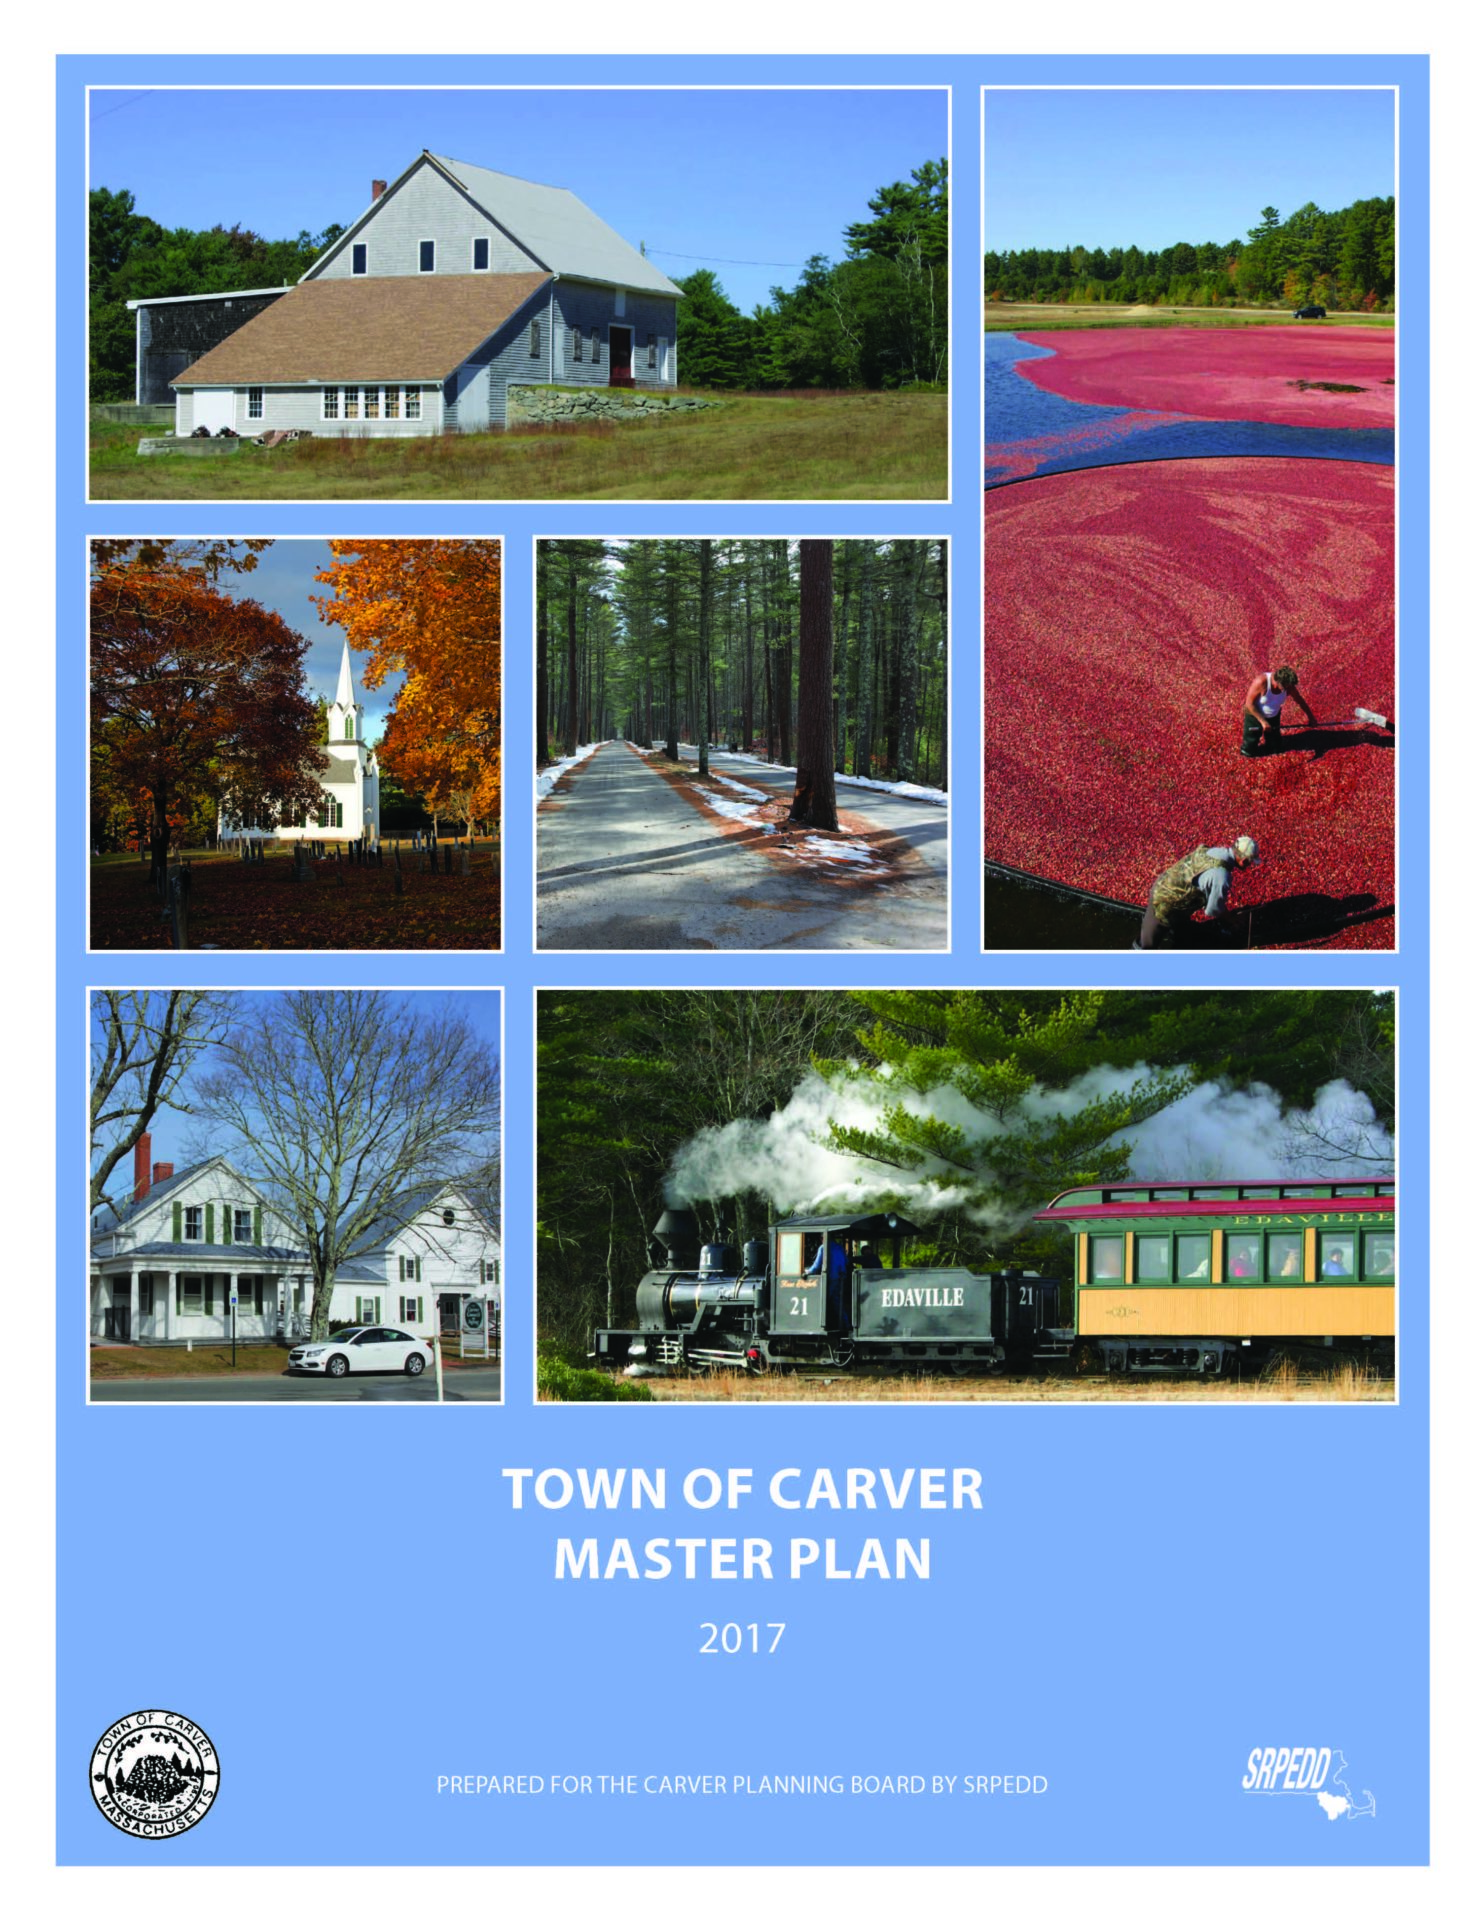 The cover of the 2017 Carver Master Plan.